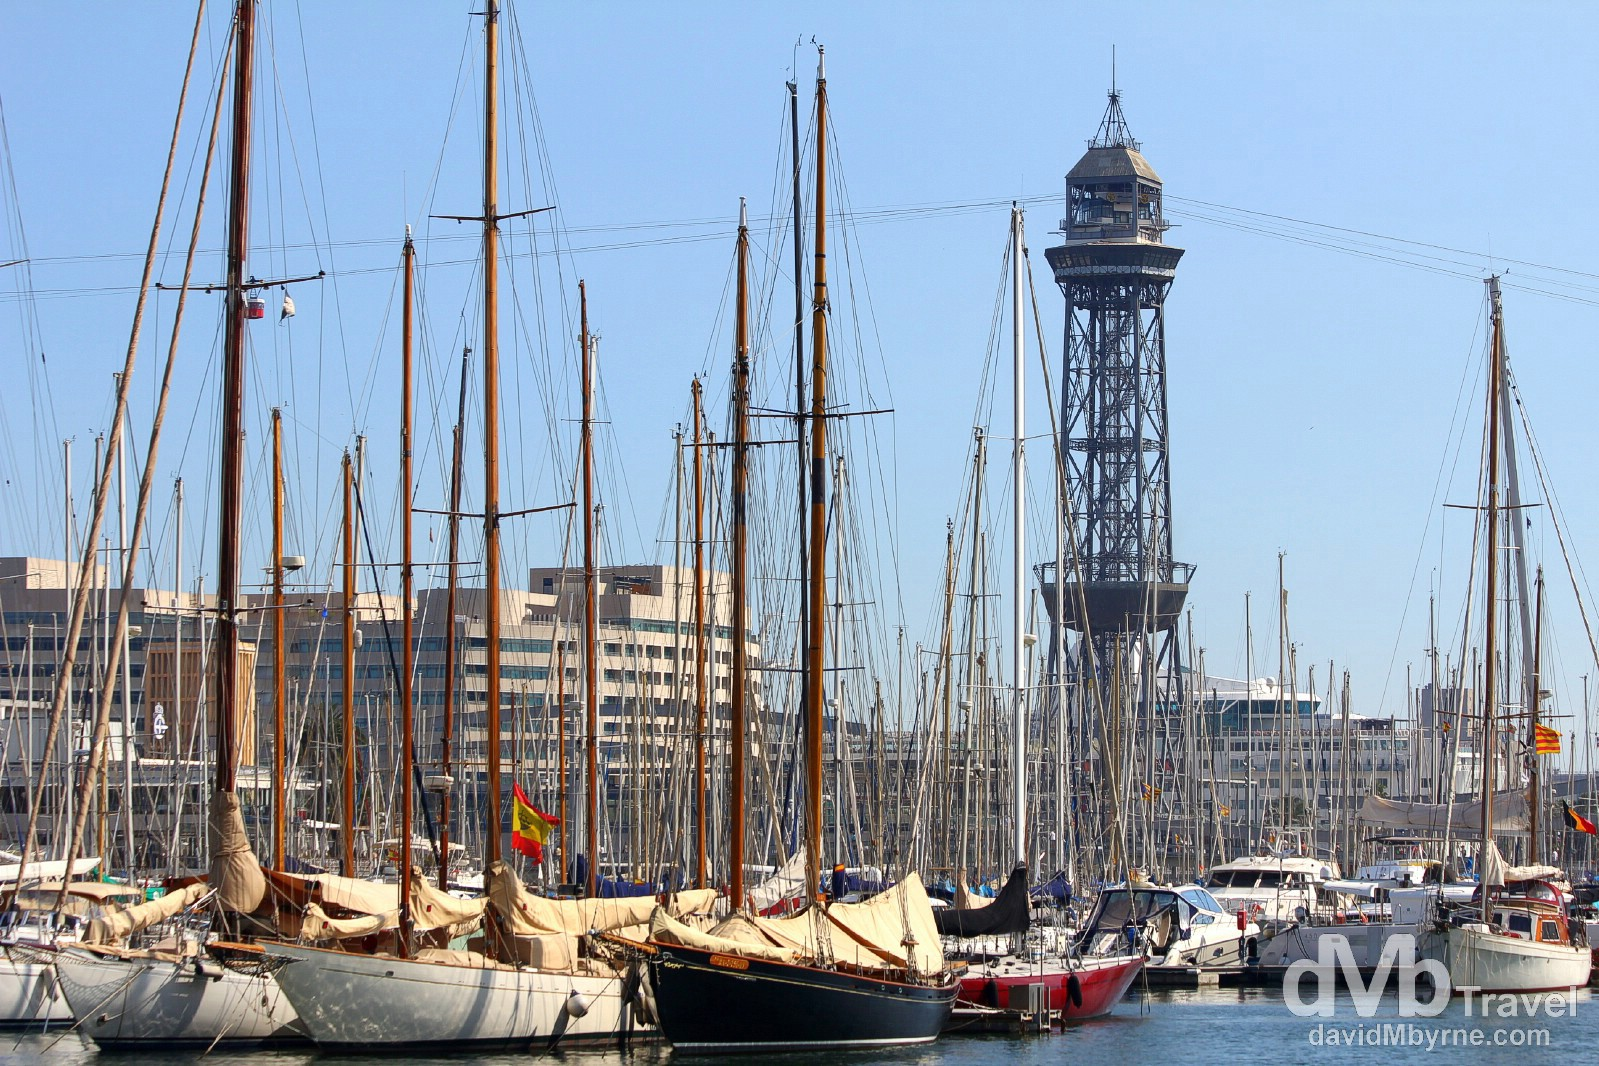 Port de Barcelona, Barcelona, Spain. June 16th, 2014.